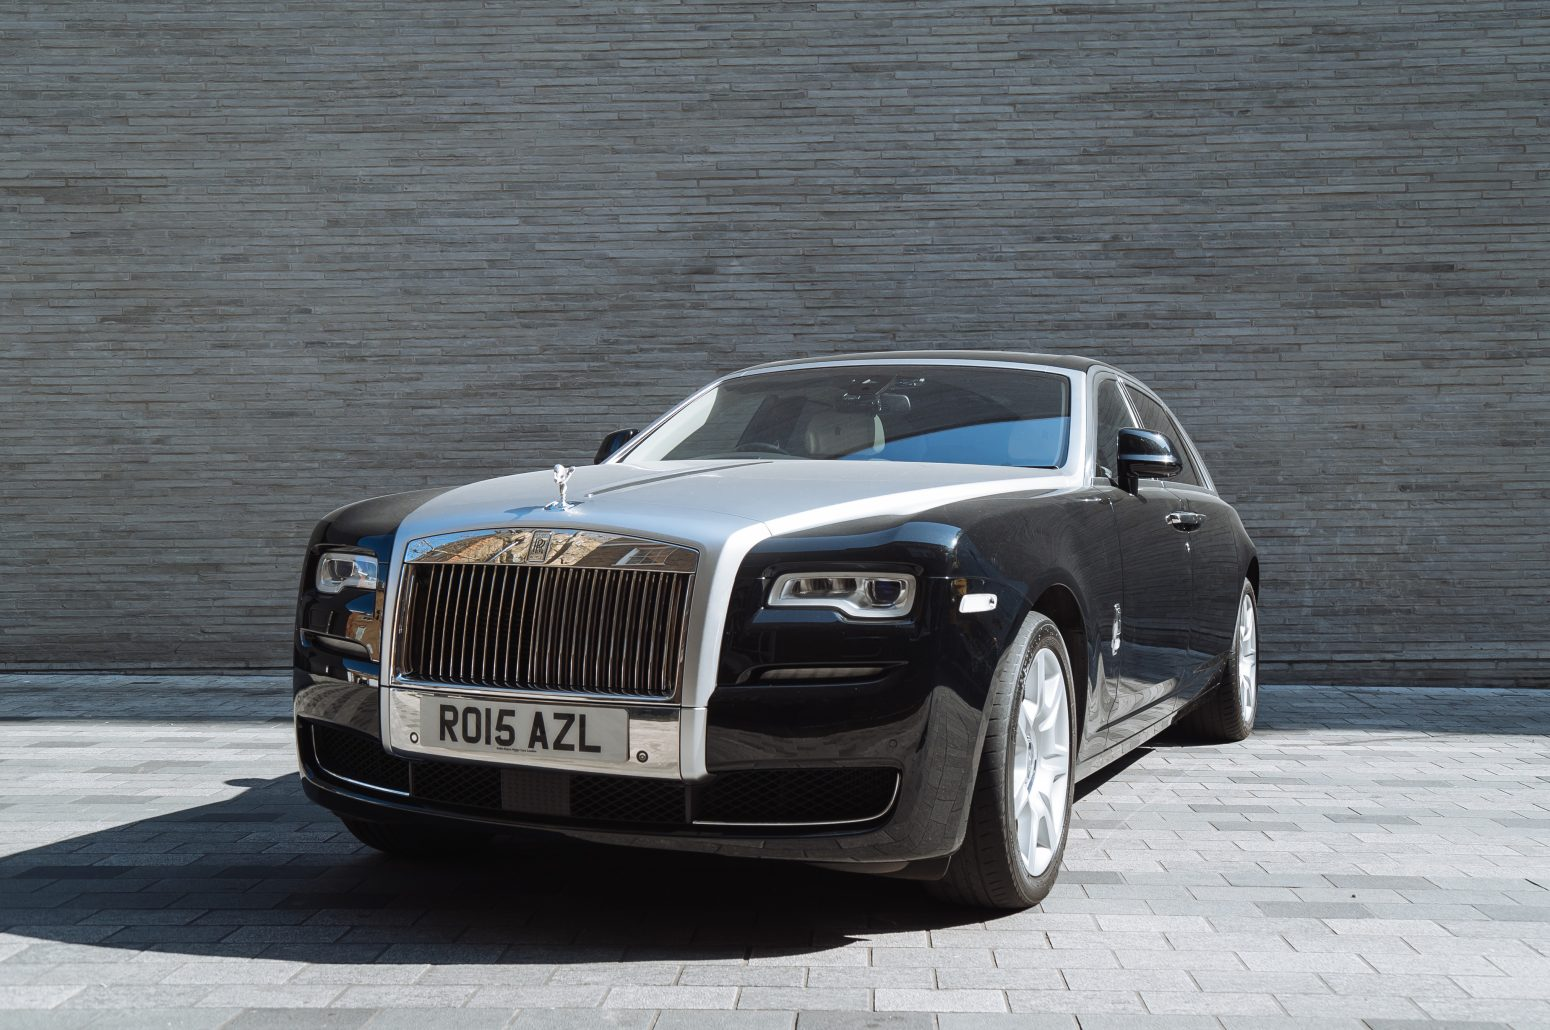 Rolls Royce Ghost London City Airport Chauffeur Transfer